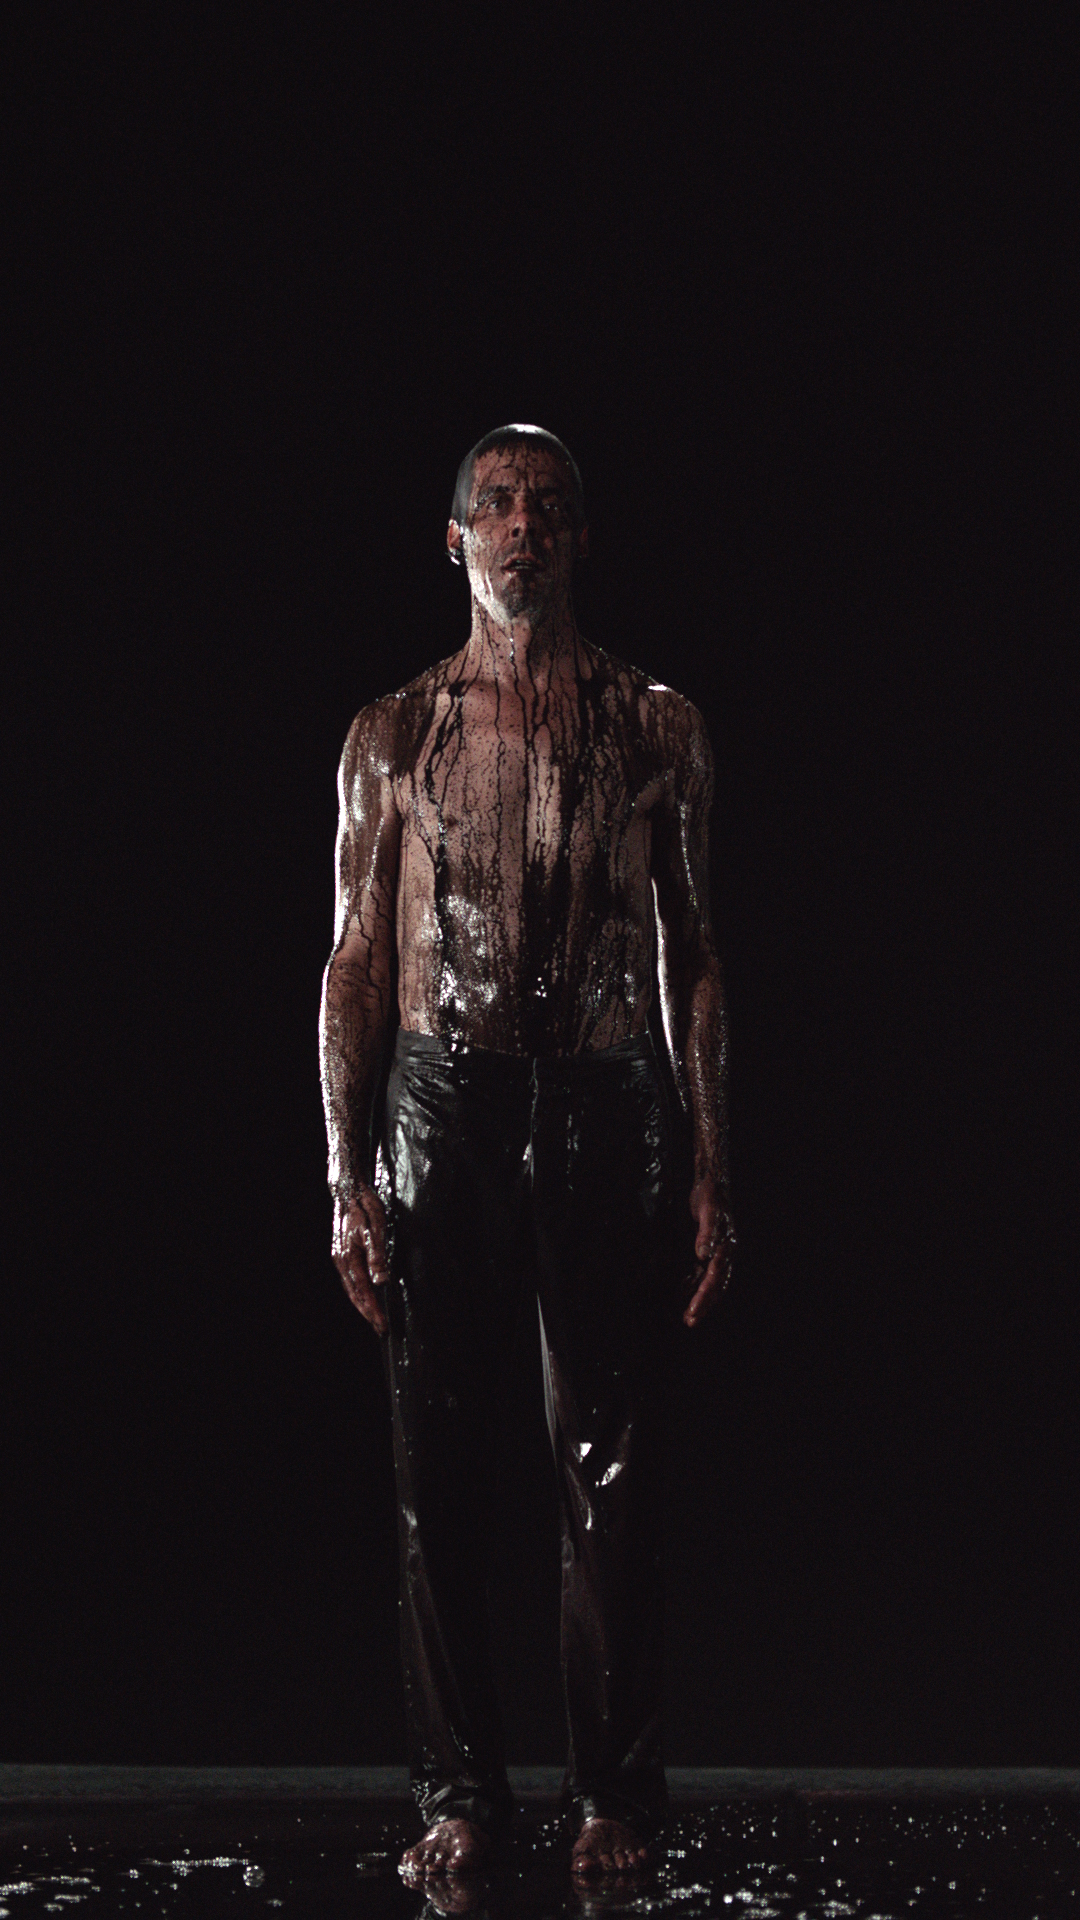 Image Above:©Bill Viola. Inverted Birth, 2014, Video/sound installation, Color high-definition video projection on screen mounted vertically and anchored to floor in dark room; stereo sound with subwoofer (2.1), Projected image size: 16 ft 5 in. x 9 ft 3 in. (5 x 2.81 m), 8:22 minutes, Executive producer: Kira Perov, Performer: Norman Scott.